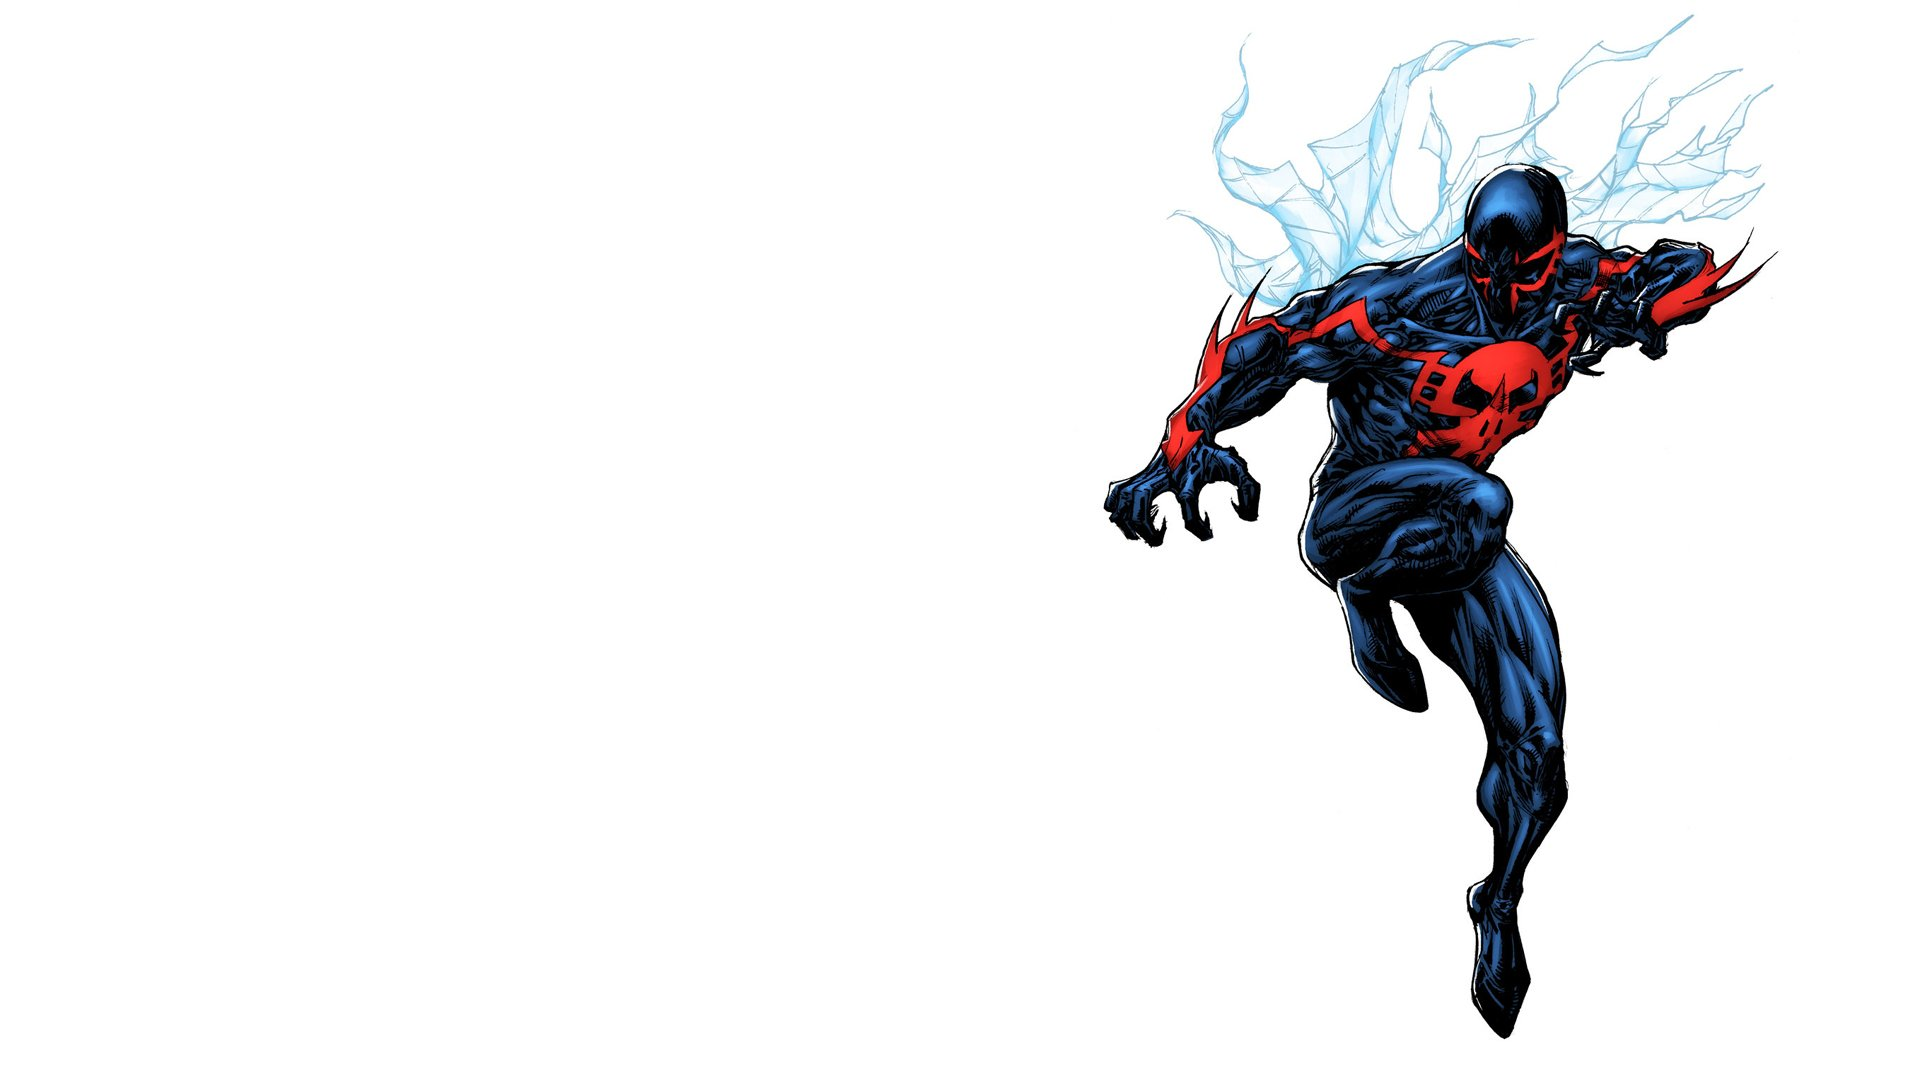 Cool Spiderman 2099 Wallpaper: Spider-Man 2099 HD Wallpaper